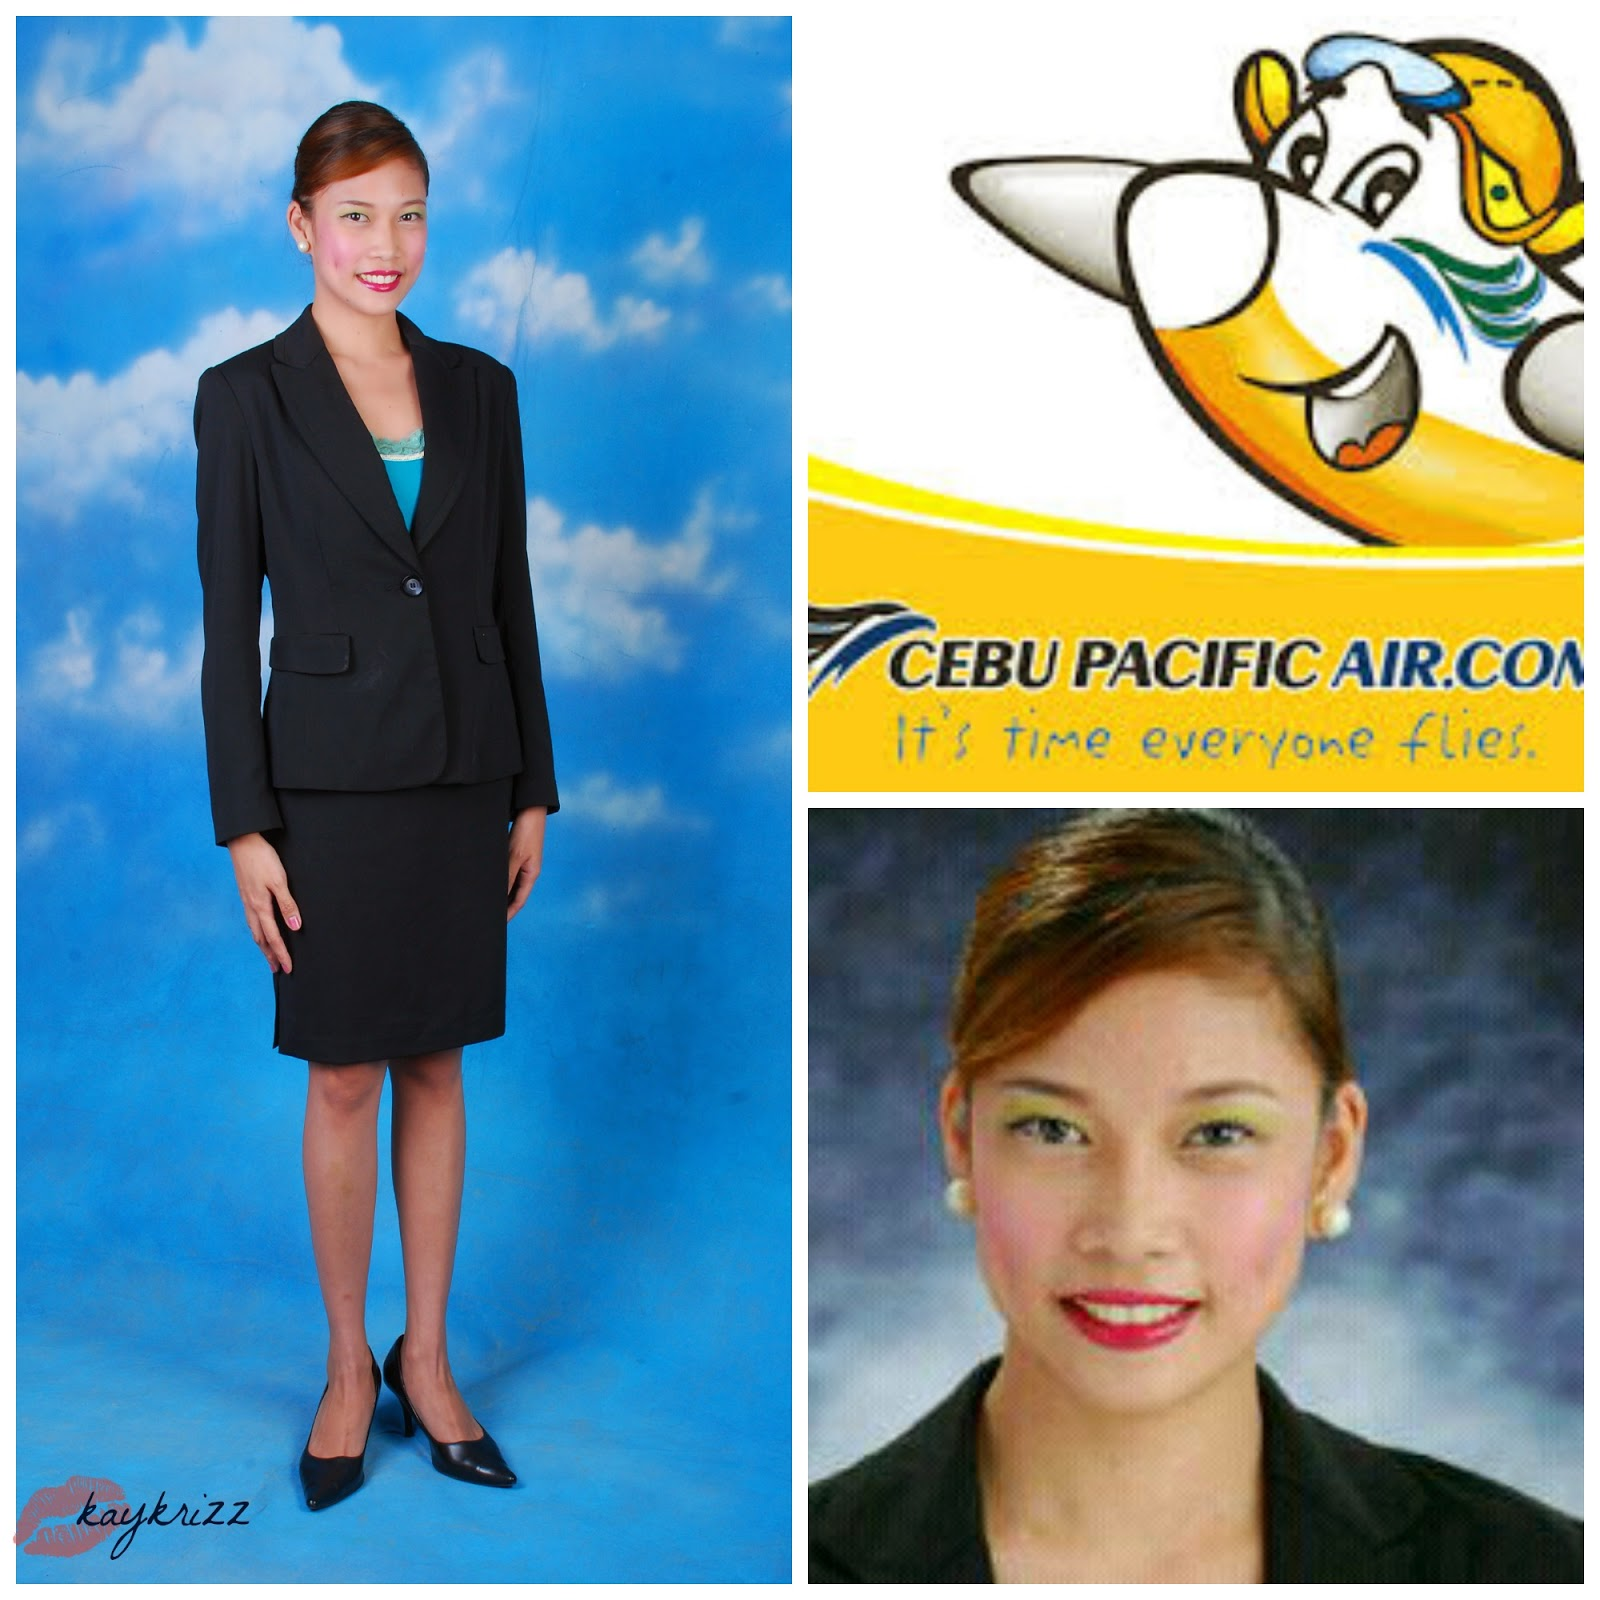 the 5j cebu pacific air recruitment experience - Apply For Stewardess Job